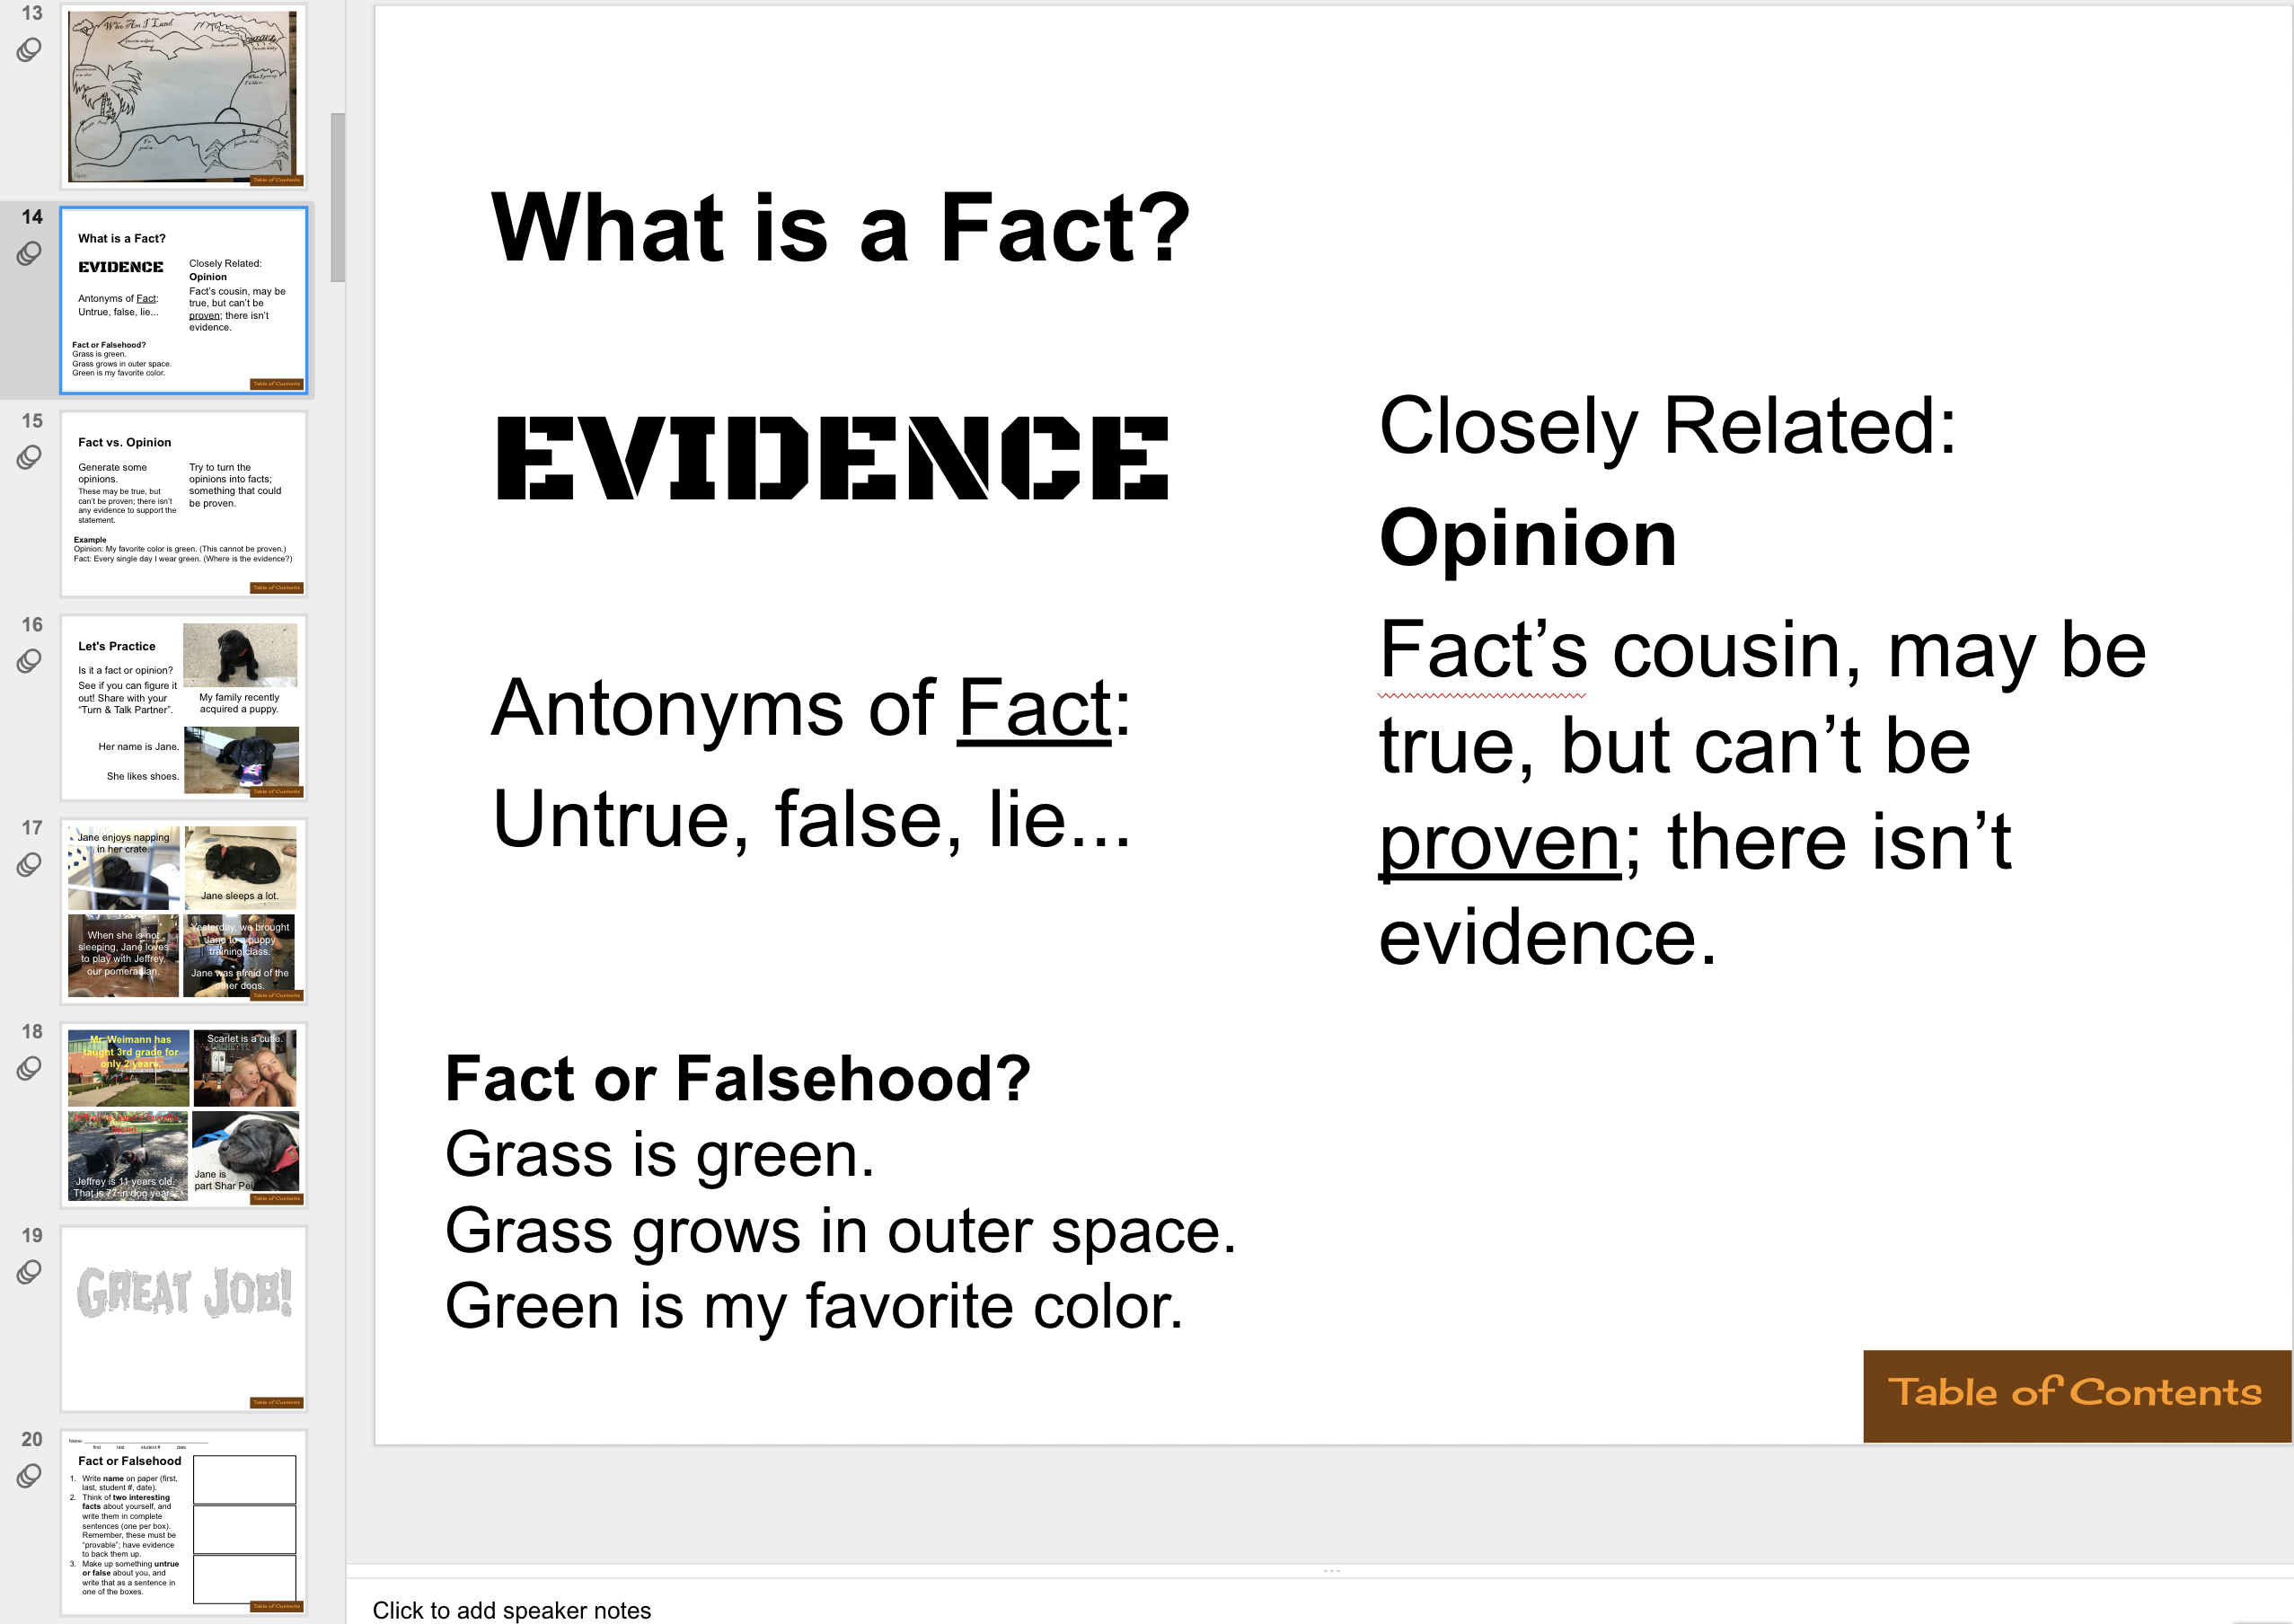 Previous Evidence Lesson (1st day)